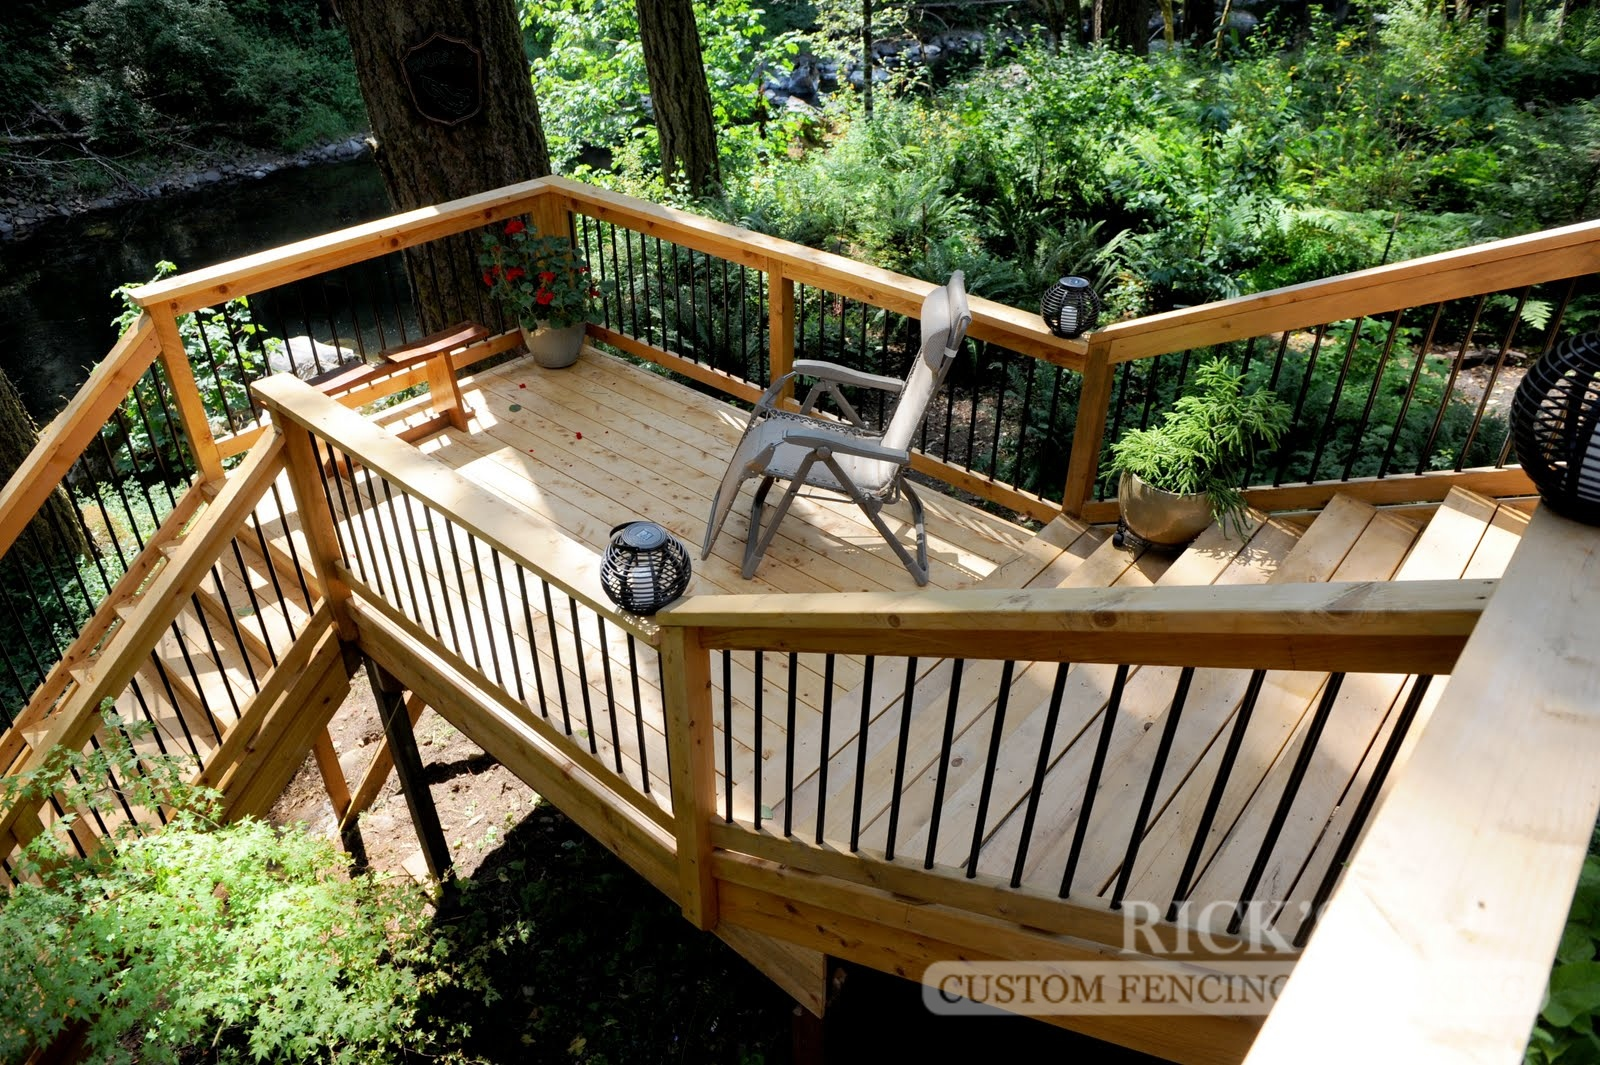 1053 - Port Orford Cedar Decking with Handrail